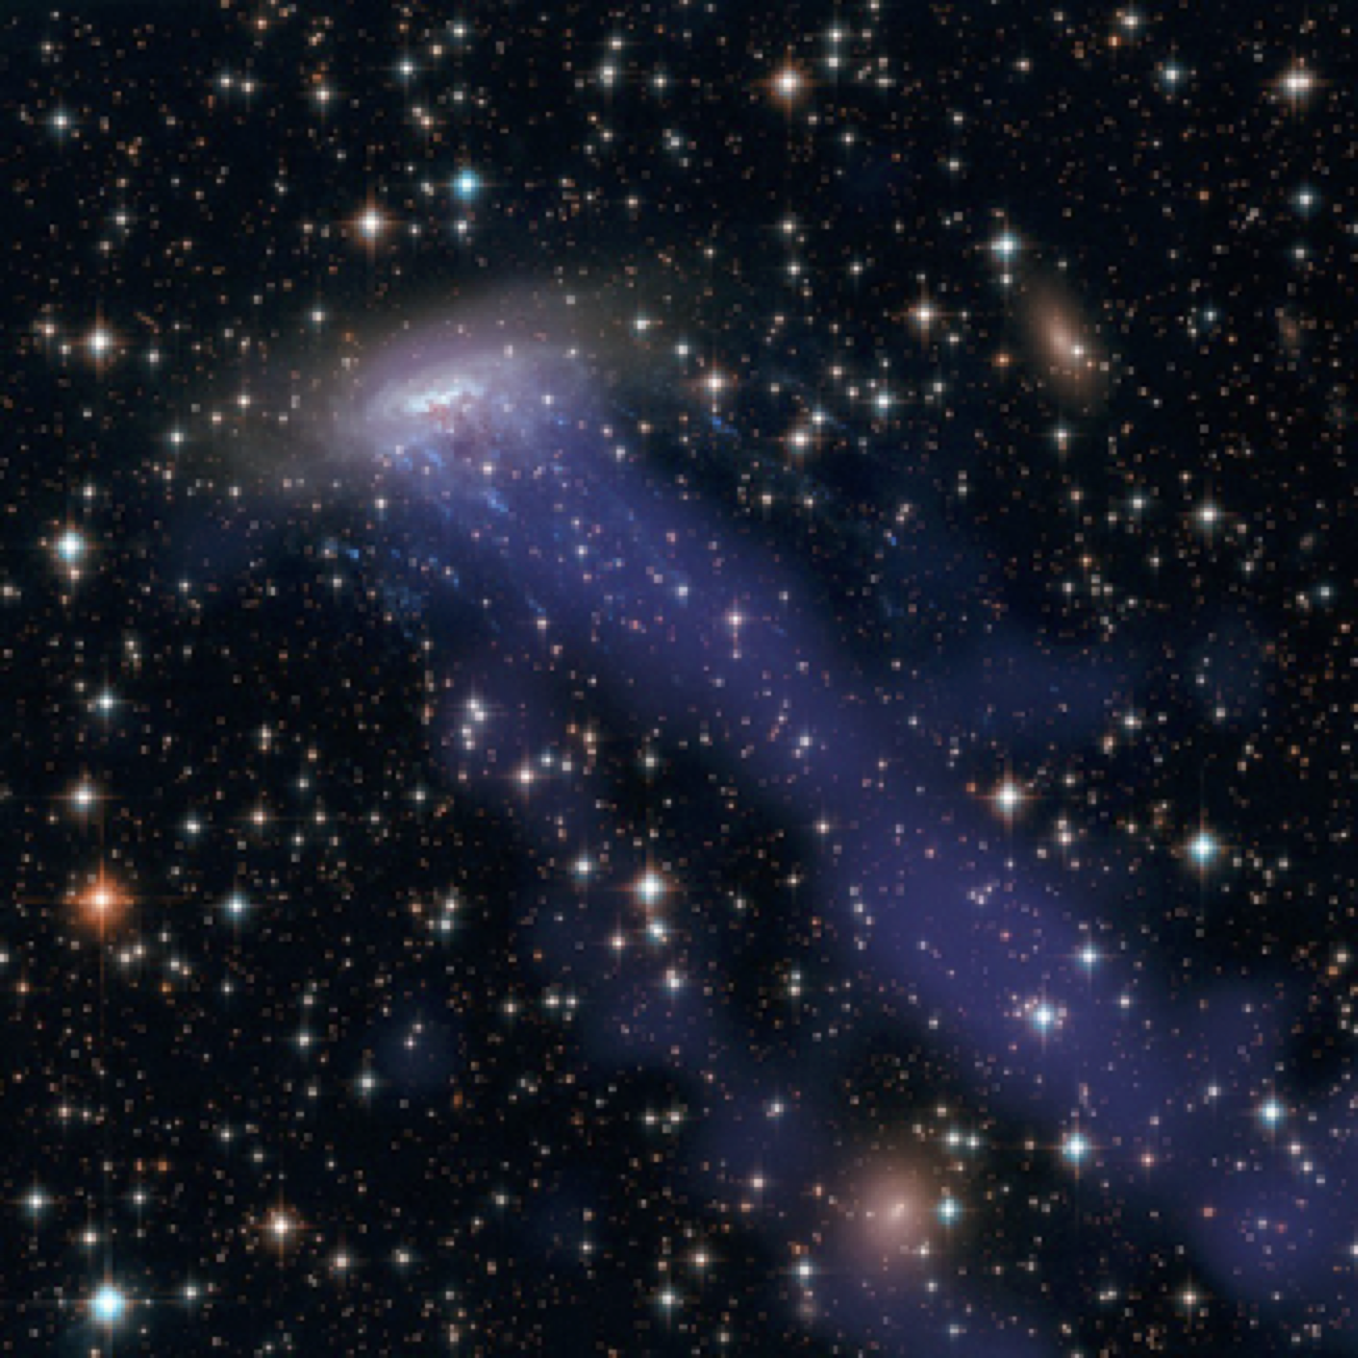 Gas being stripped from a spiral galaxy as it plunges into a dense cluster